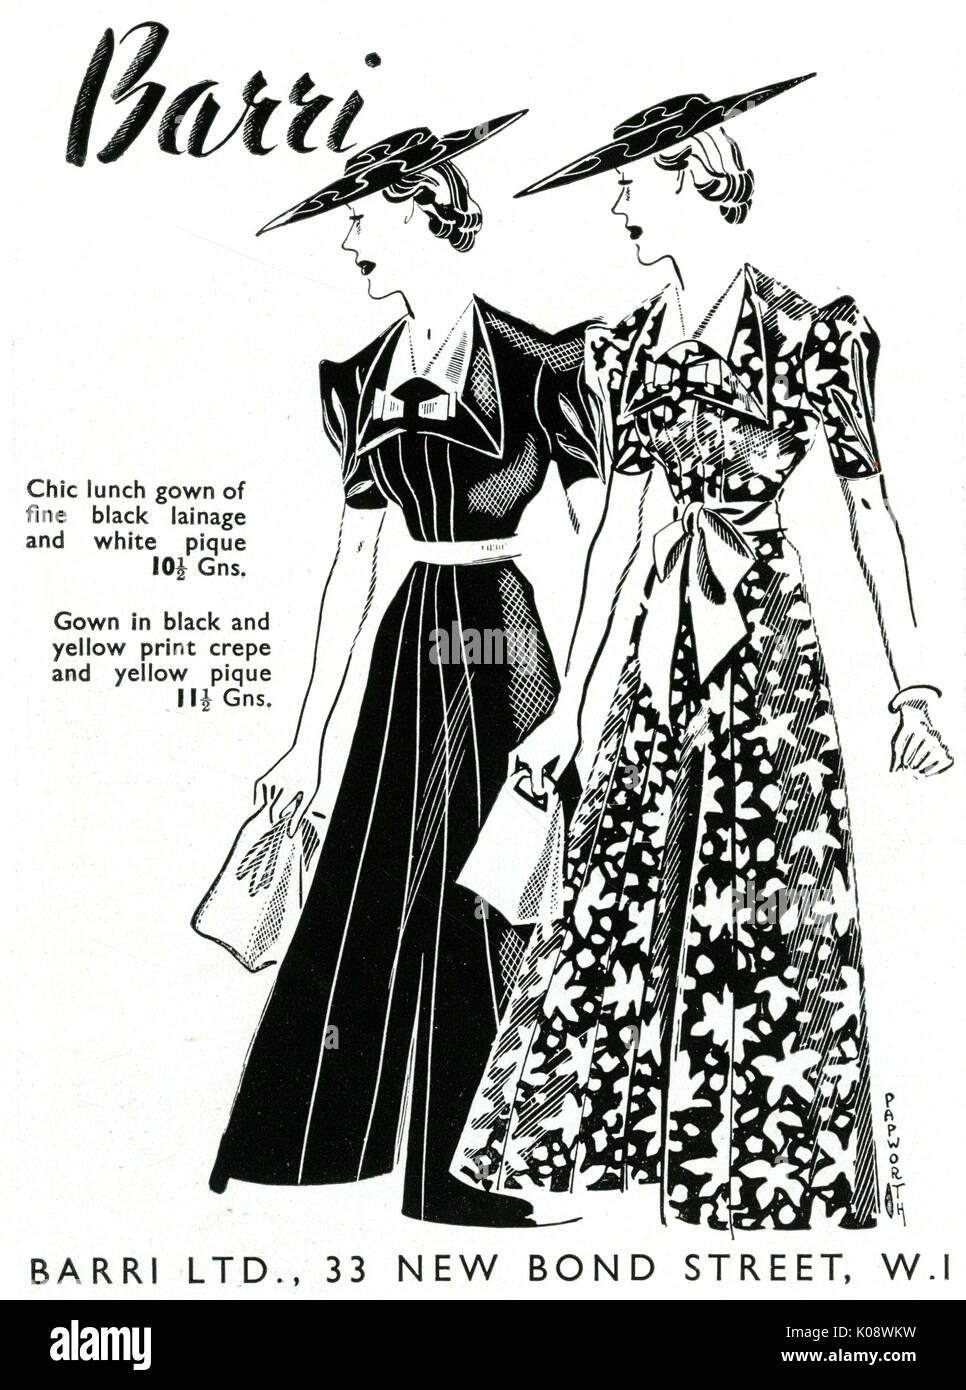 Two women wearing lunch dresses made from crepe print.     Date: 1937 - Stock Image